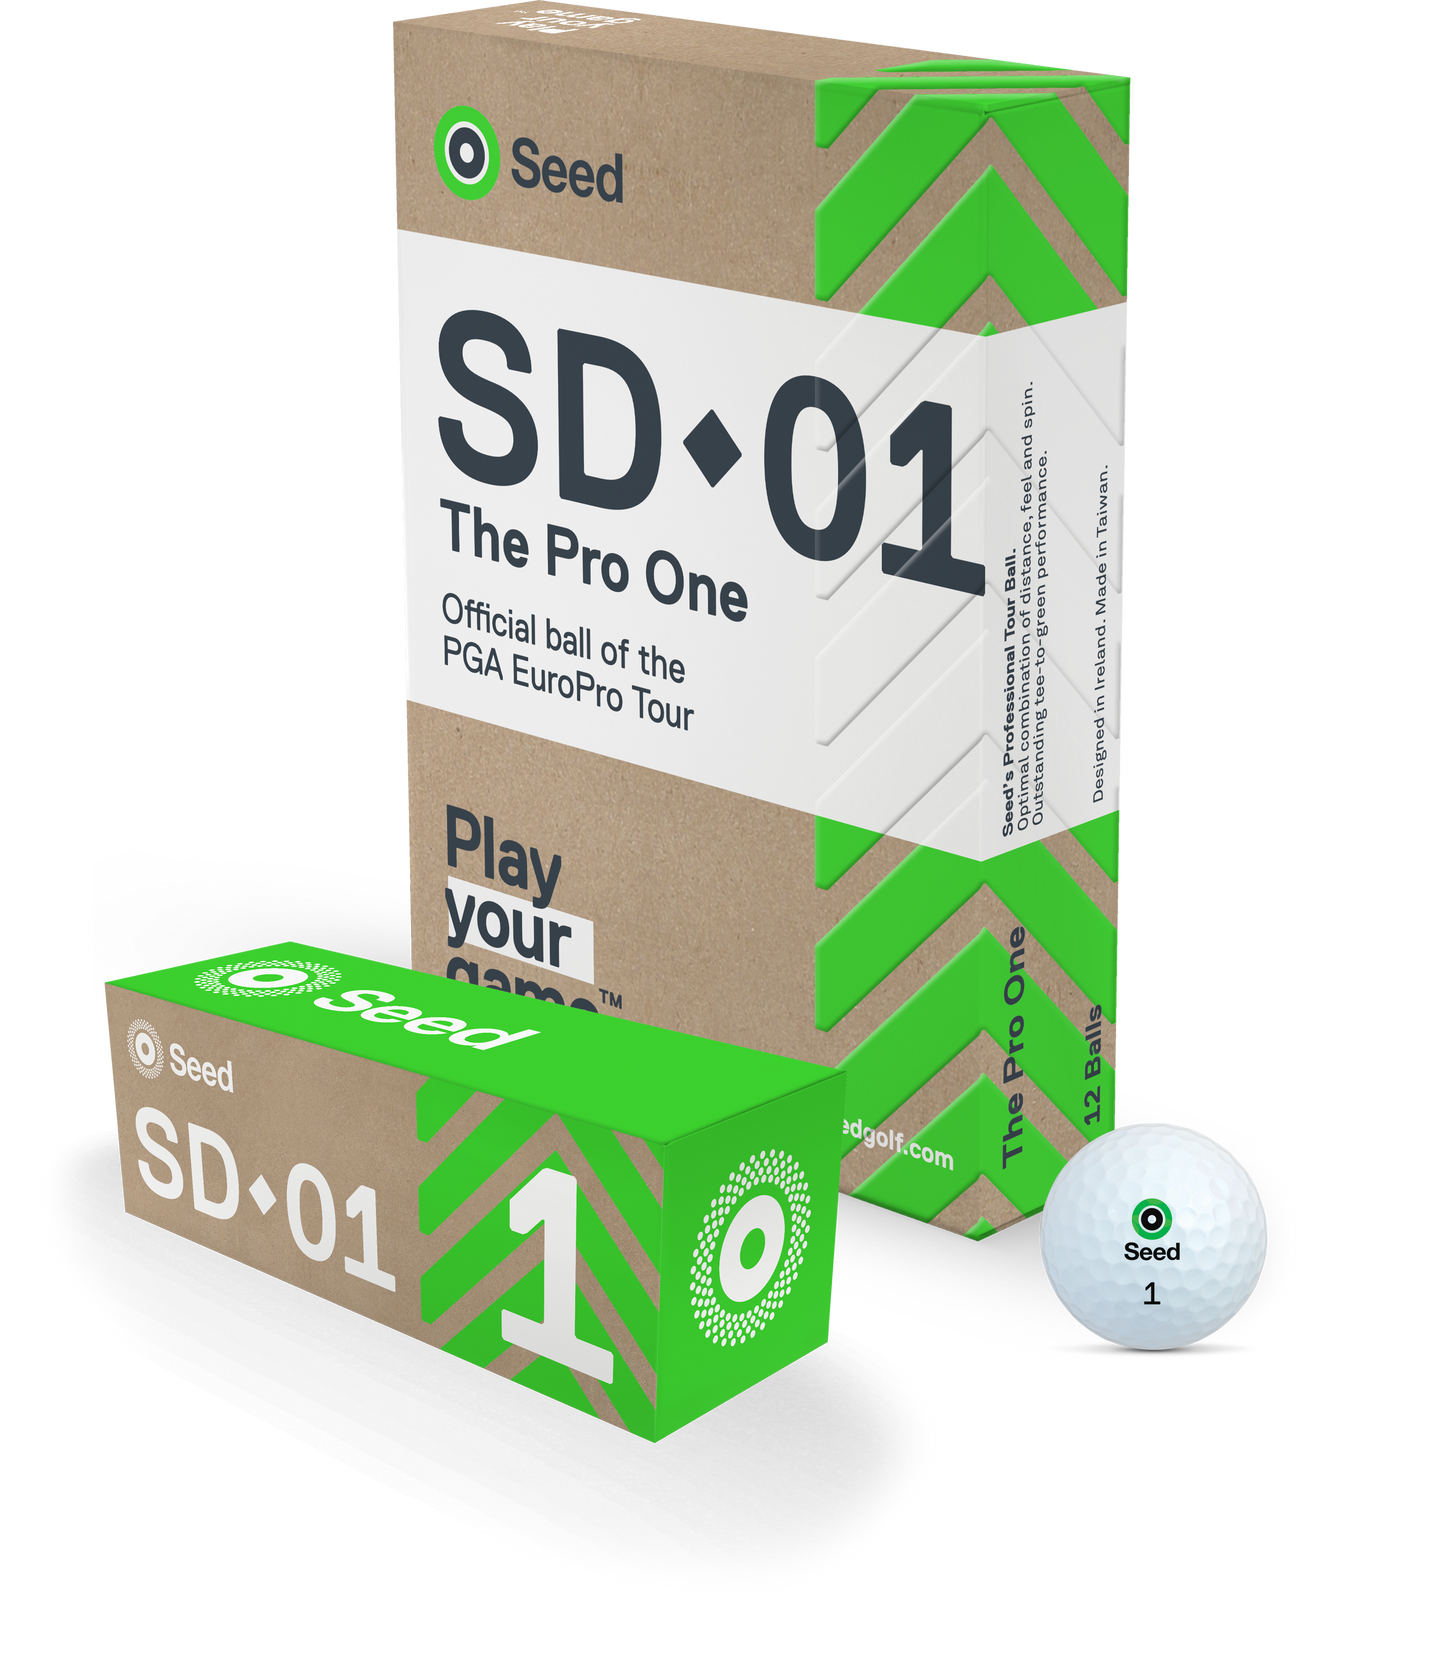 Seed SD-01 The Pro One